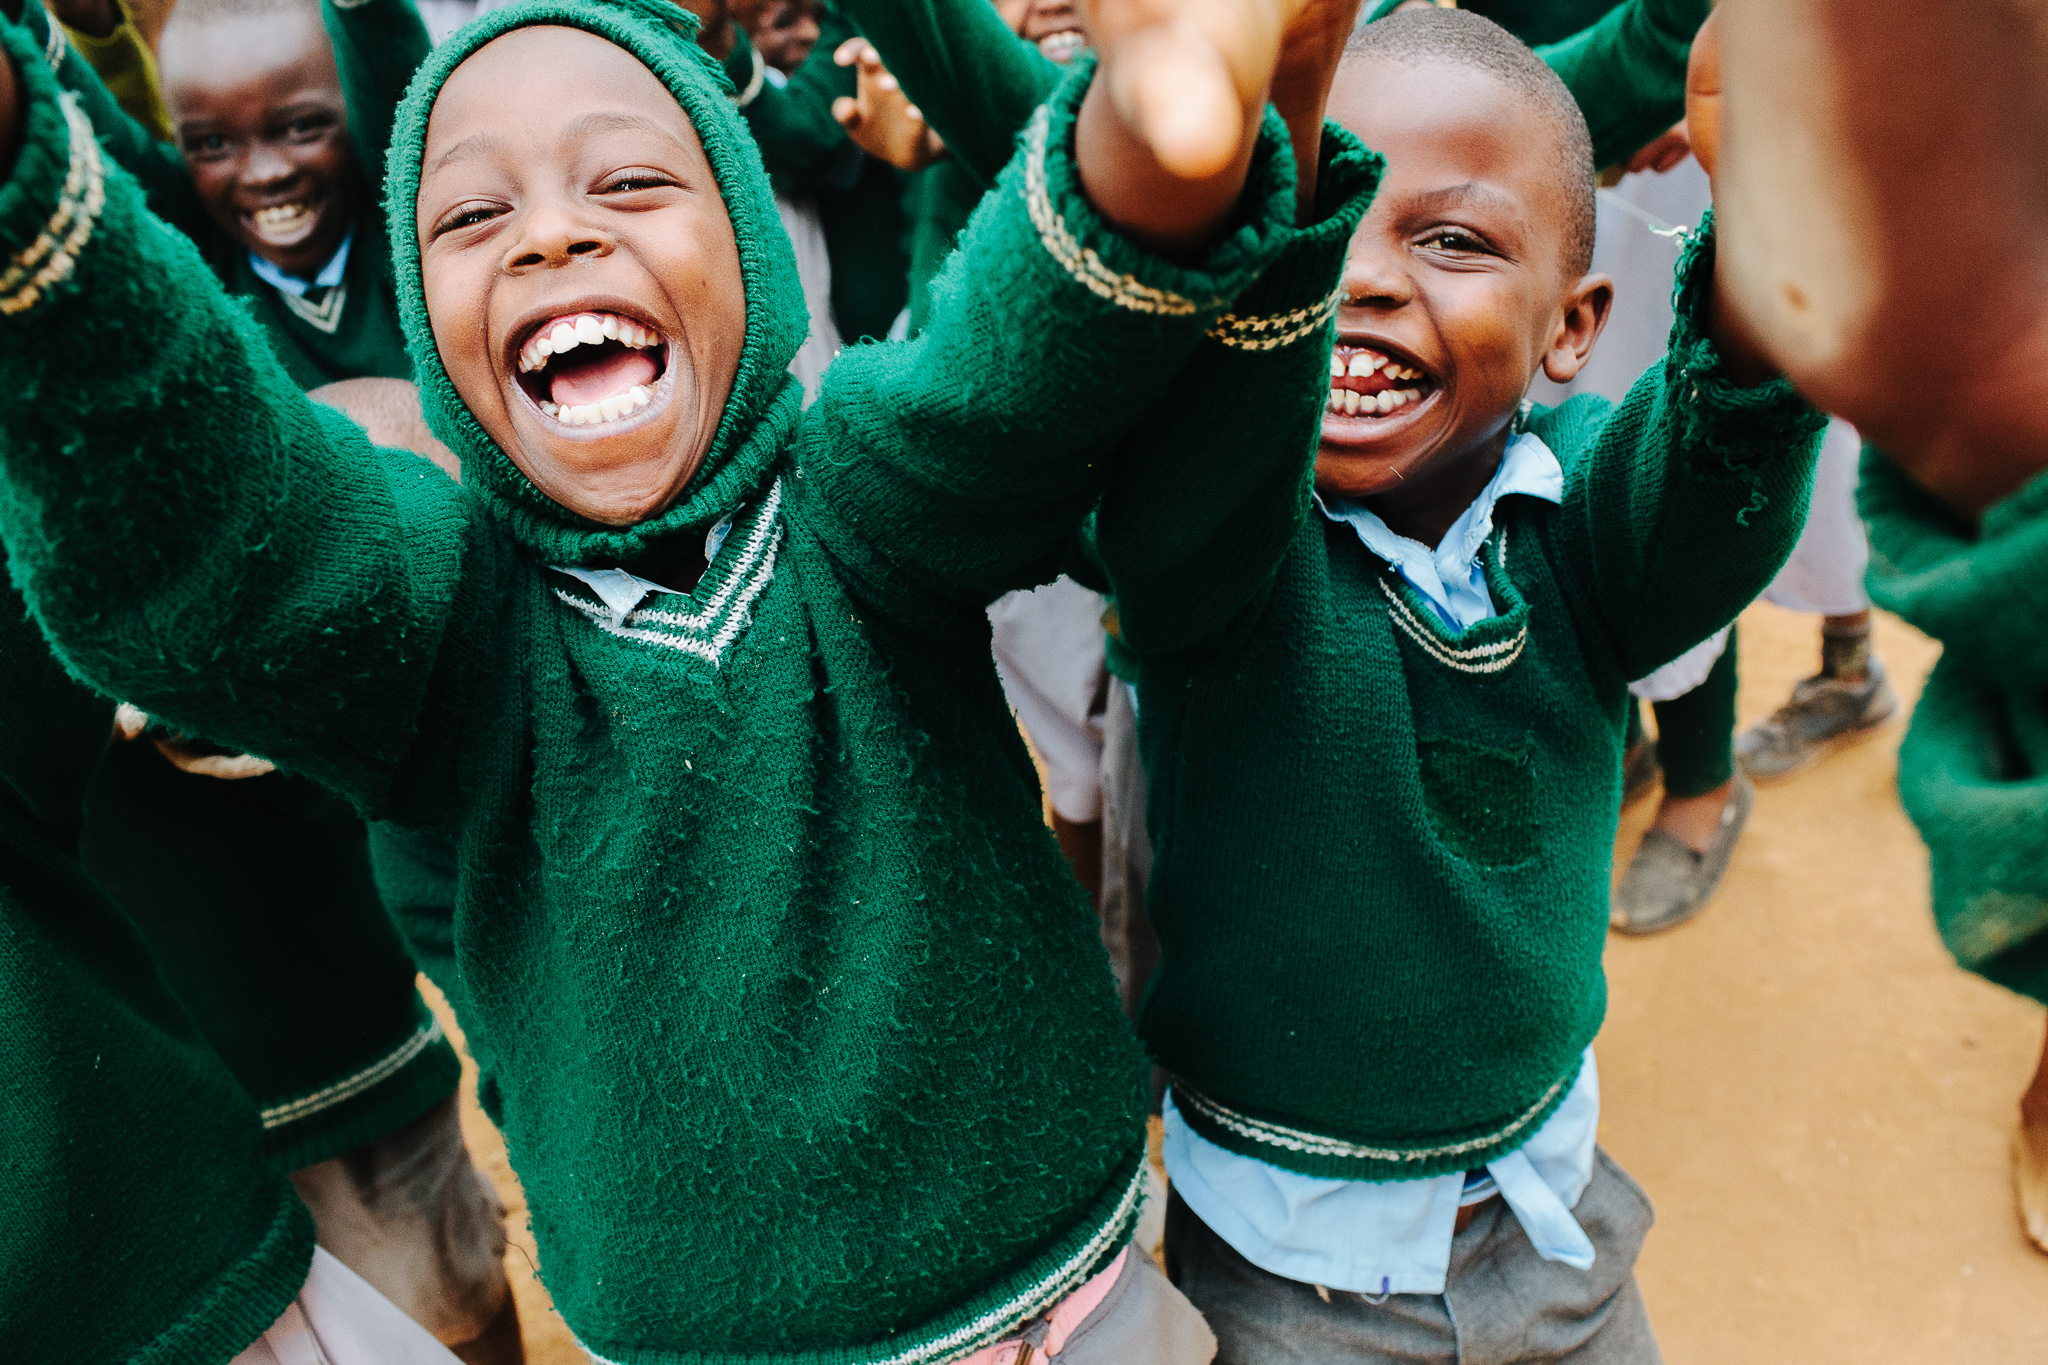 save the date! - Saturday, November 2, 20195:00 PM 7:30 PMSt John Episcopal ChurchBooks and Bricks Global cordially invites you to attend our annual fundraiser to benefit education in Kenya.Small plates and wine will be served.Come be a part of something bigger than yourself and learn how you can help students in rural Kenya.Please RSVP: office@booksandbricksglobal.org